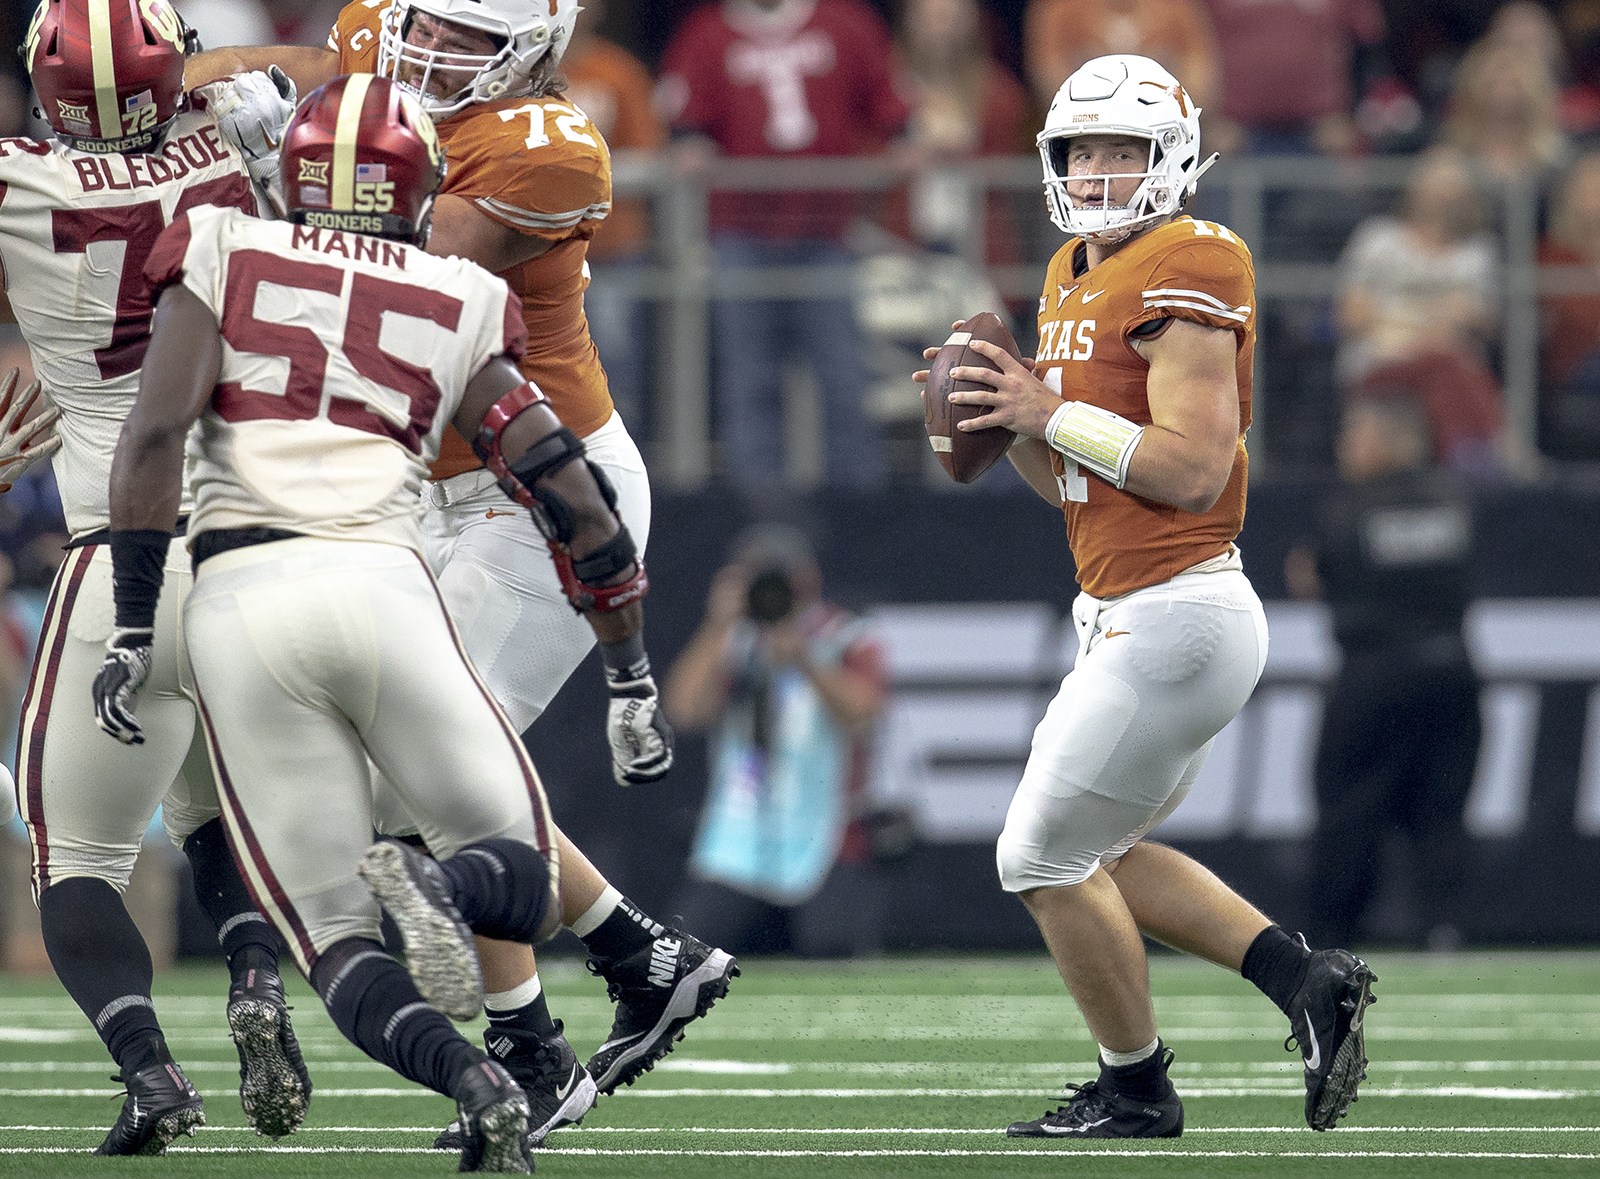 Texas quarterback Sam Ehlinger (11) looks for an open receiver during the Big 12 Conference championship NCAA college football game against Oklahoma in Arlington, Texas, on Saturday, Dec. 1, 2018. (Nick Wagner/Austin American-Statesman via AP)